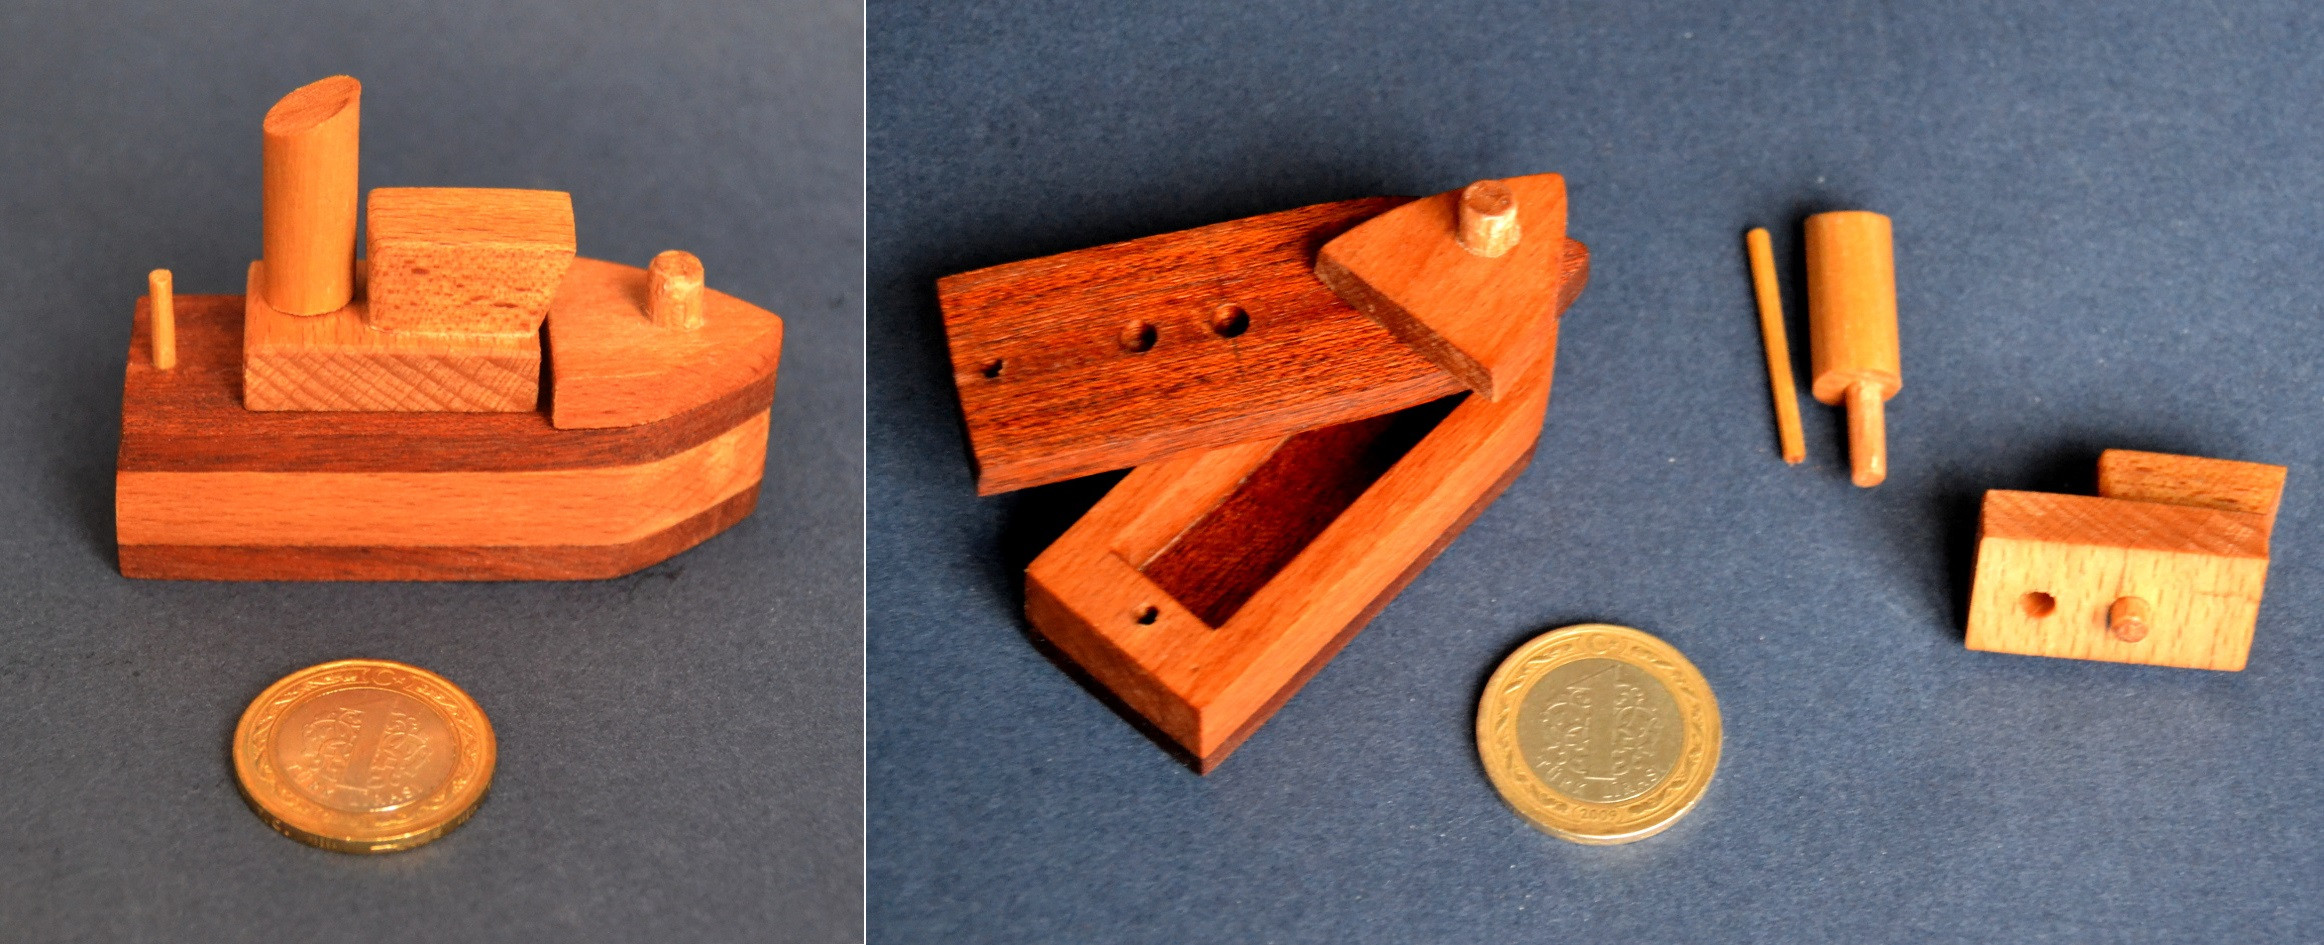 Best ideas about DIY Puzzle Box . Save or Pin Puzzle boxes Now.